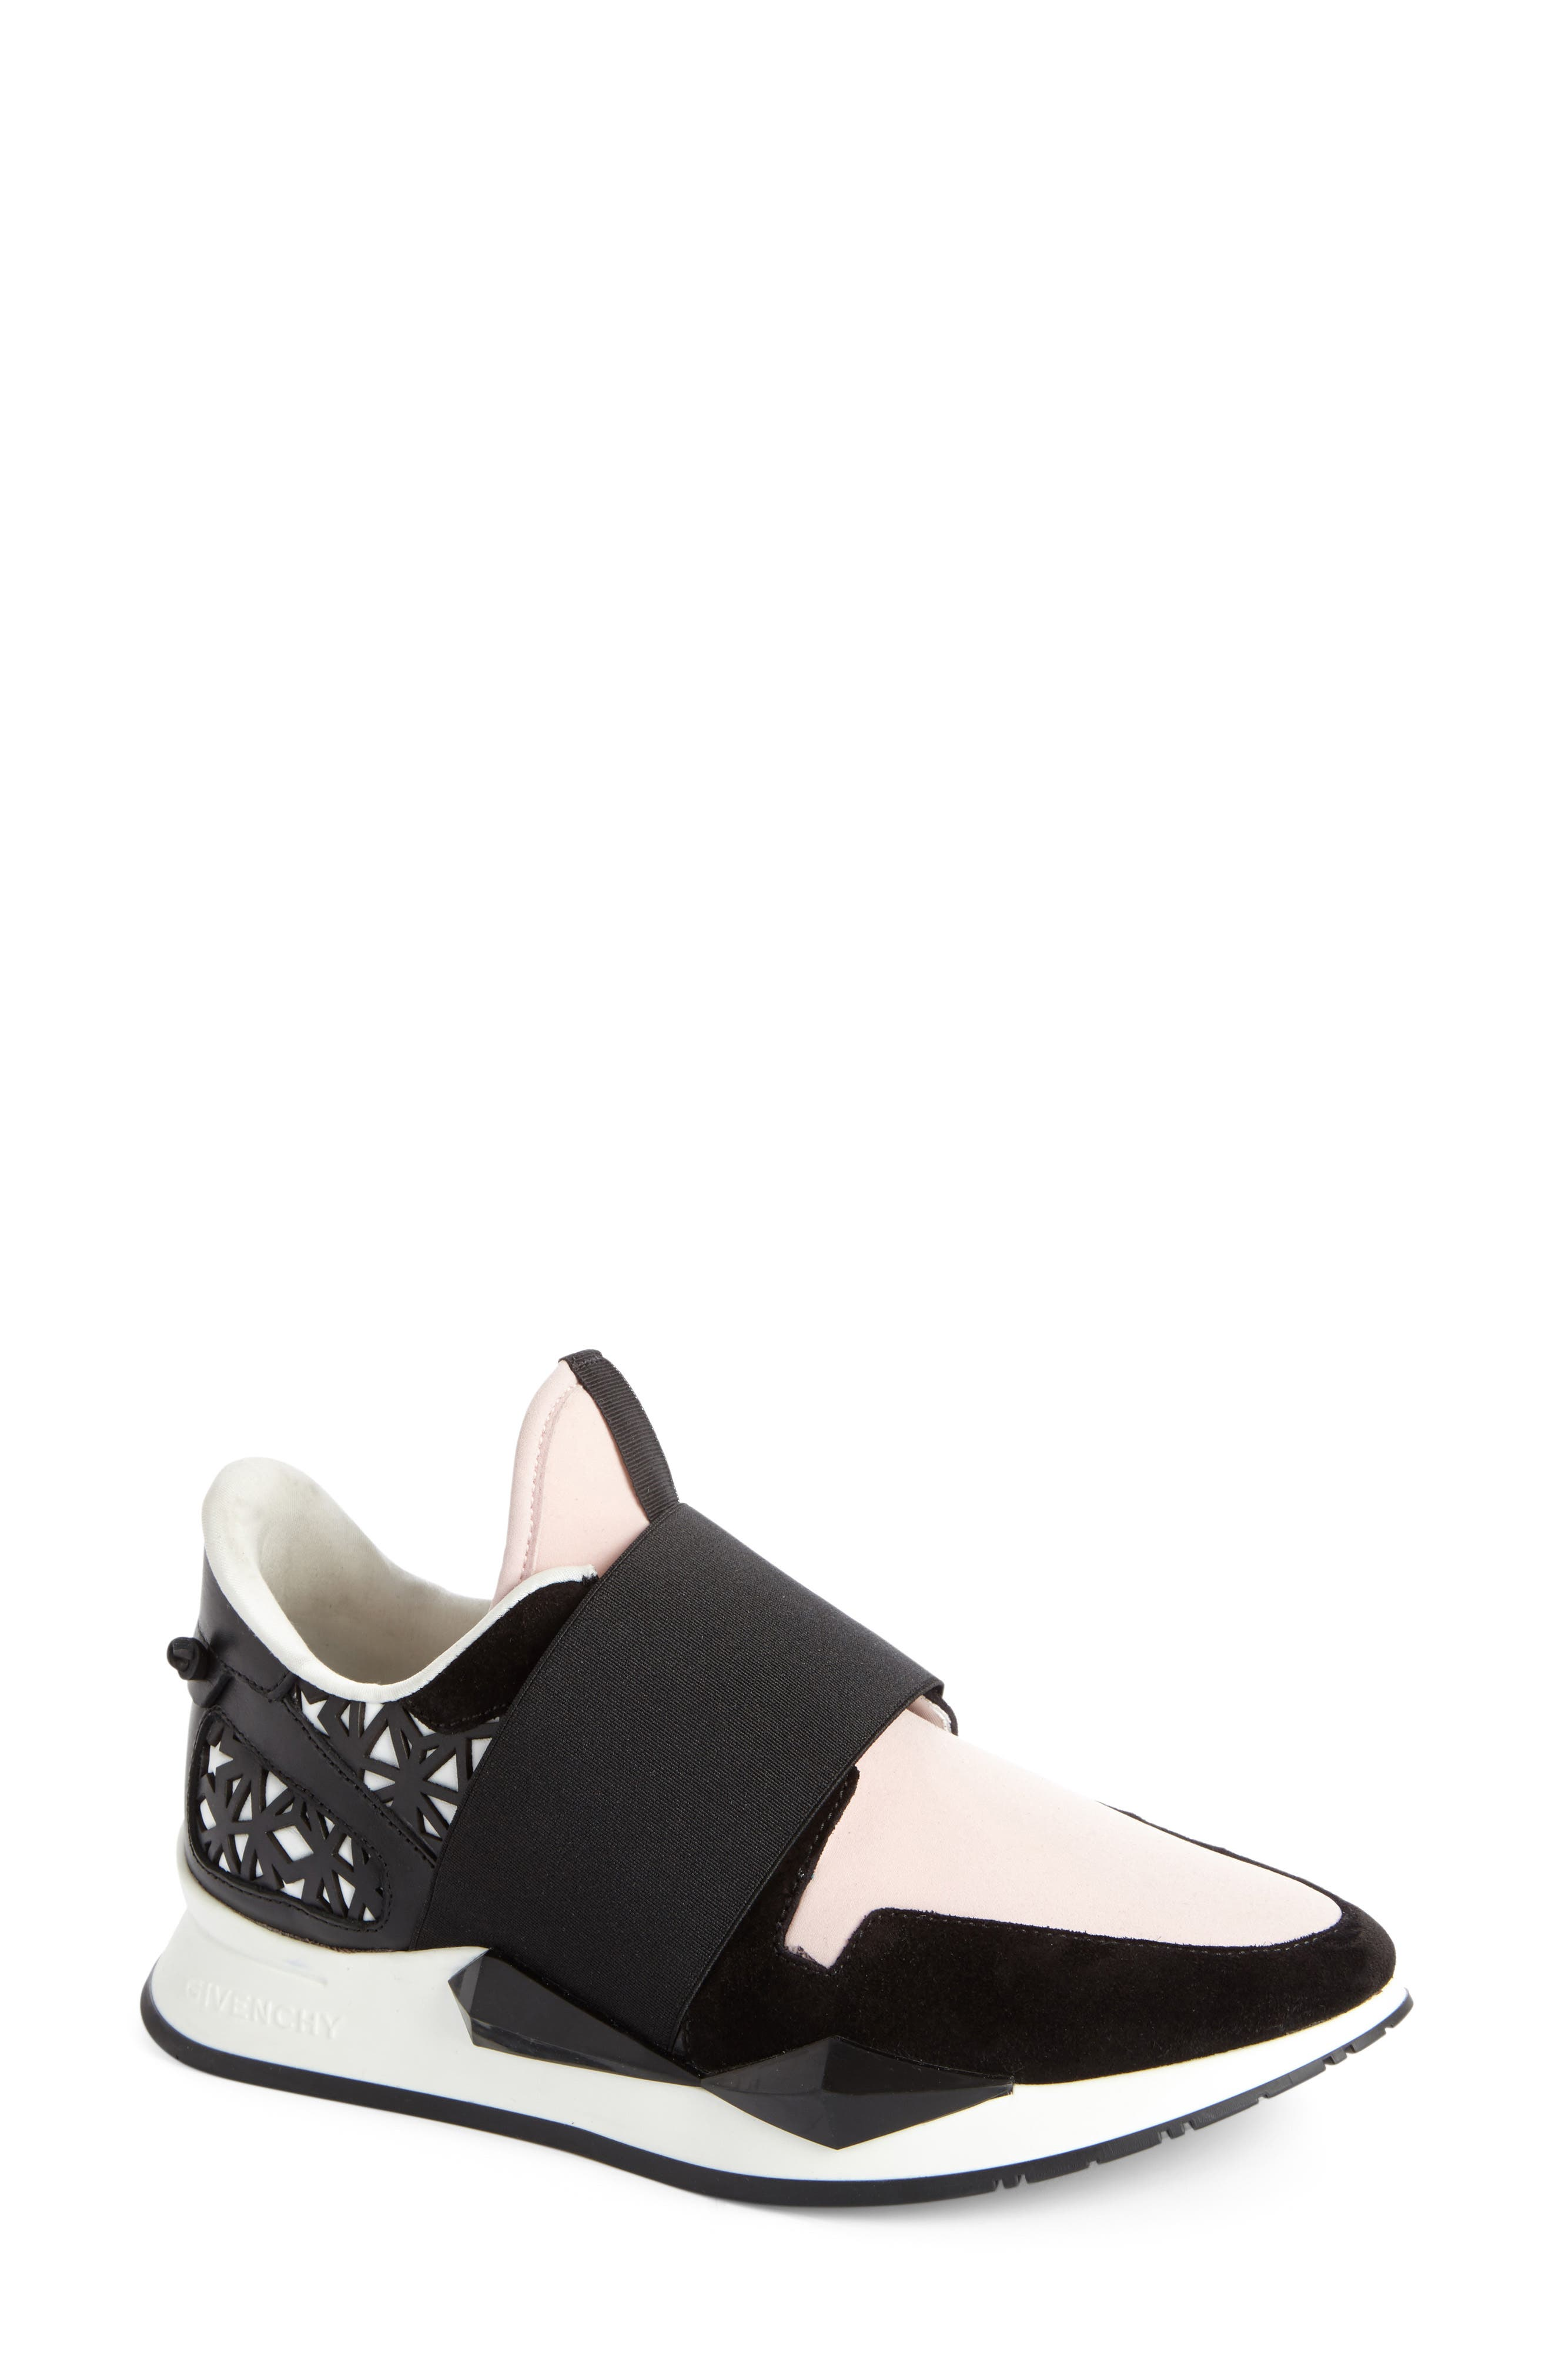 Main Image - Givenchy Slip-On Sneaker (Women)